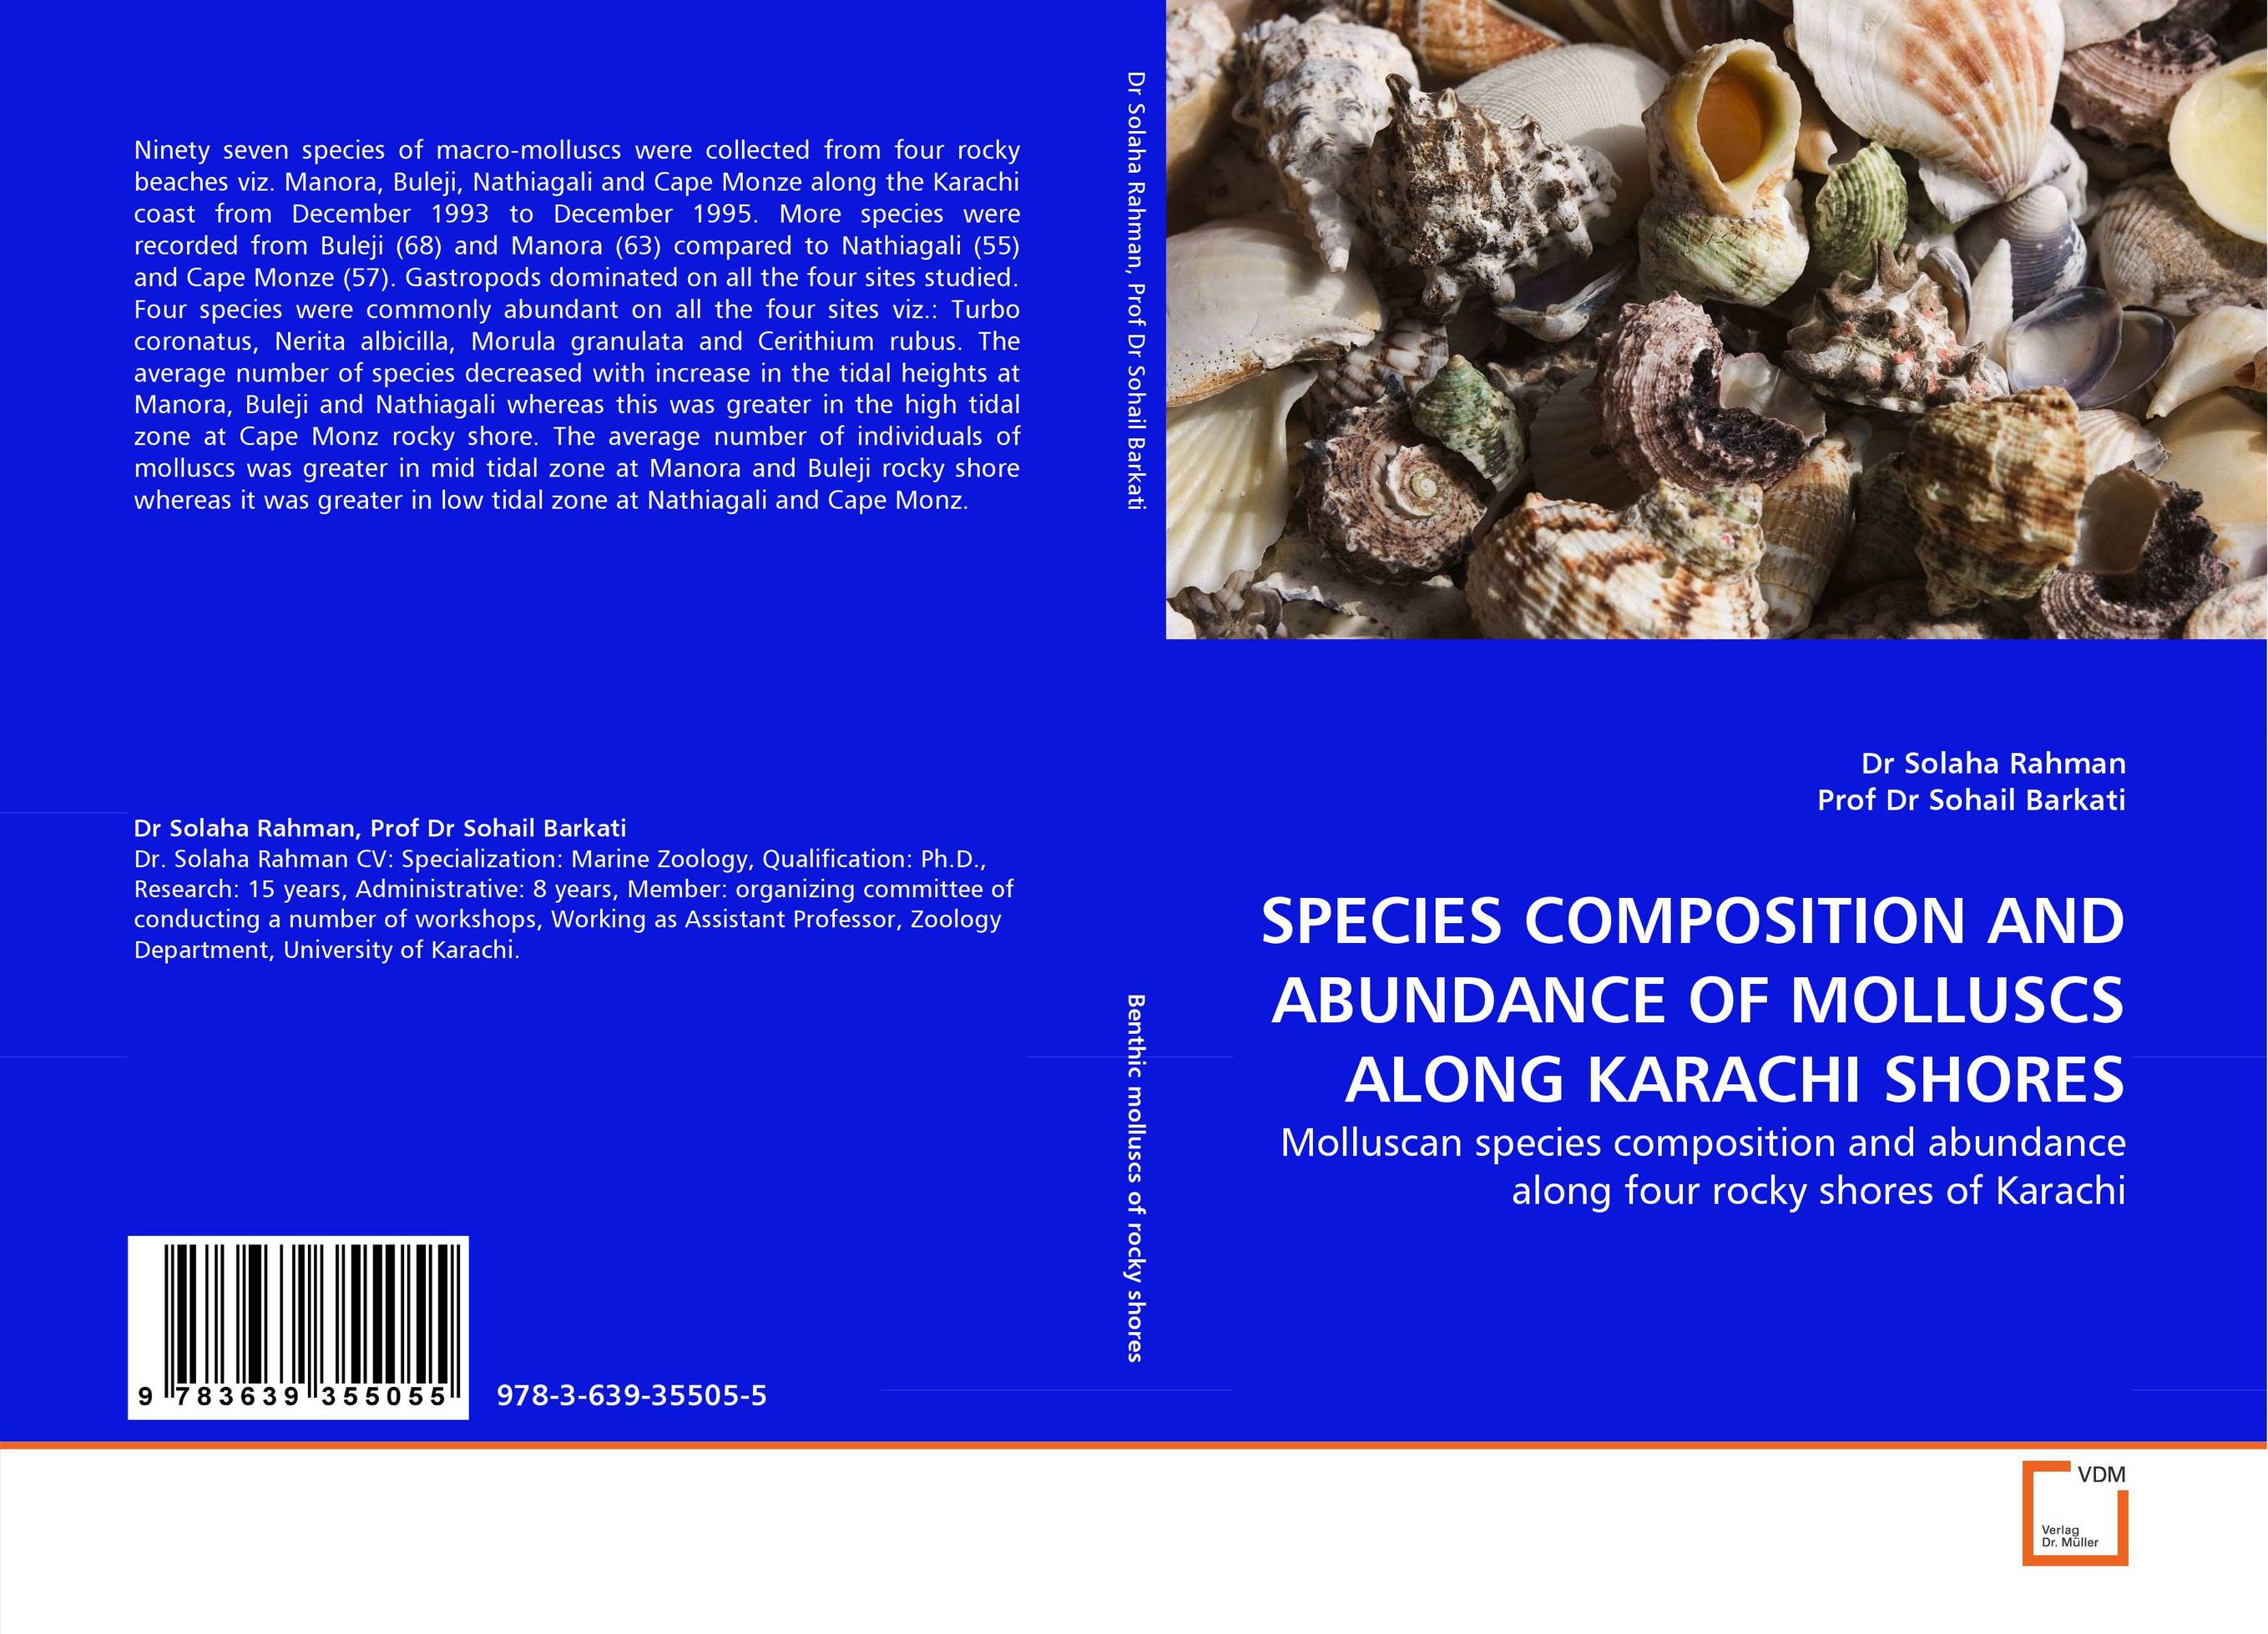 SPECIES COMPOSITION AND ABUNDANCE OF MOLLUSCS ALONG KARACHI SHORES europe america fashion star cutout lace up high heel shoes for women square toe platform wedges brogue oxford casual shoes us 10